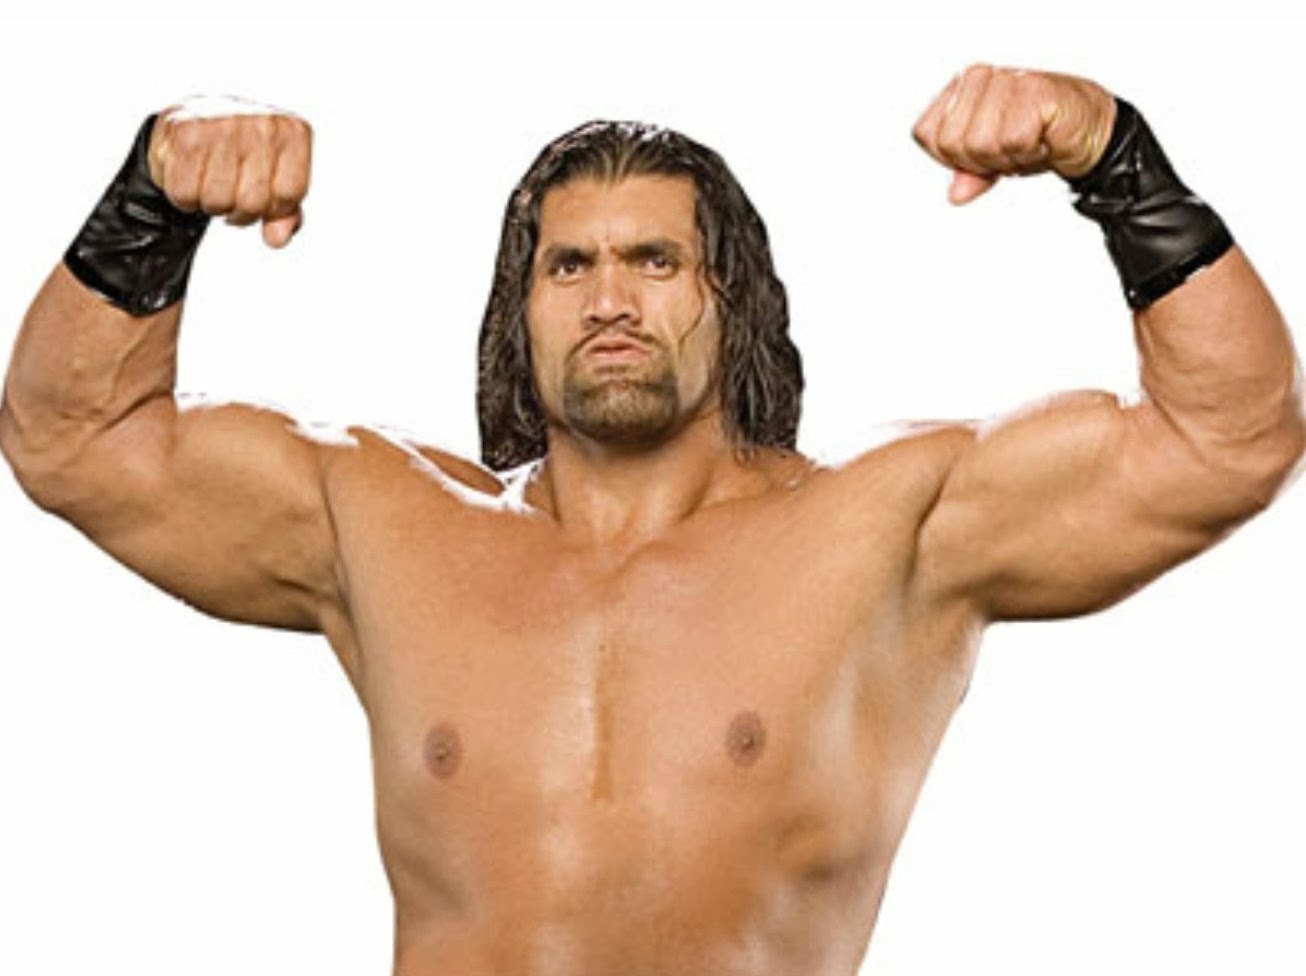 Great Khali Body And Diet Plan - Top Ten Indian Bodybuilders